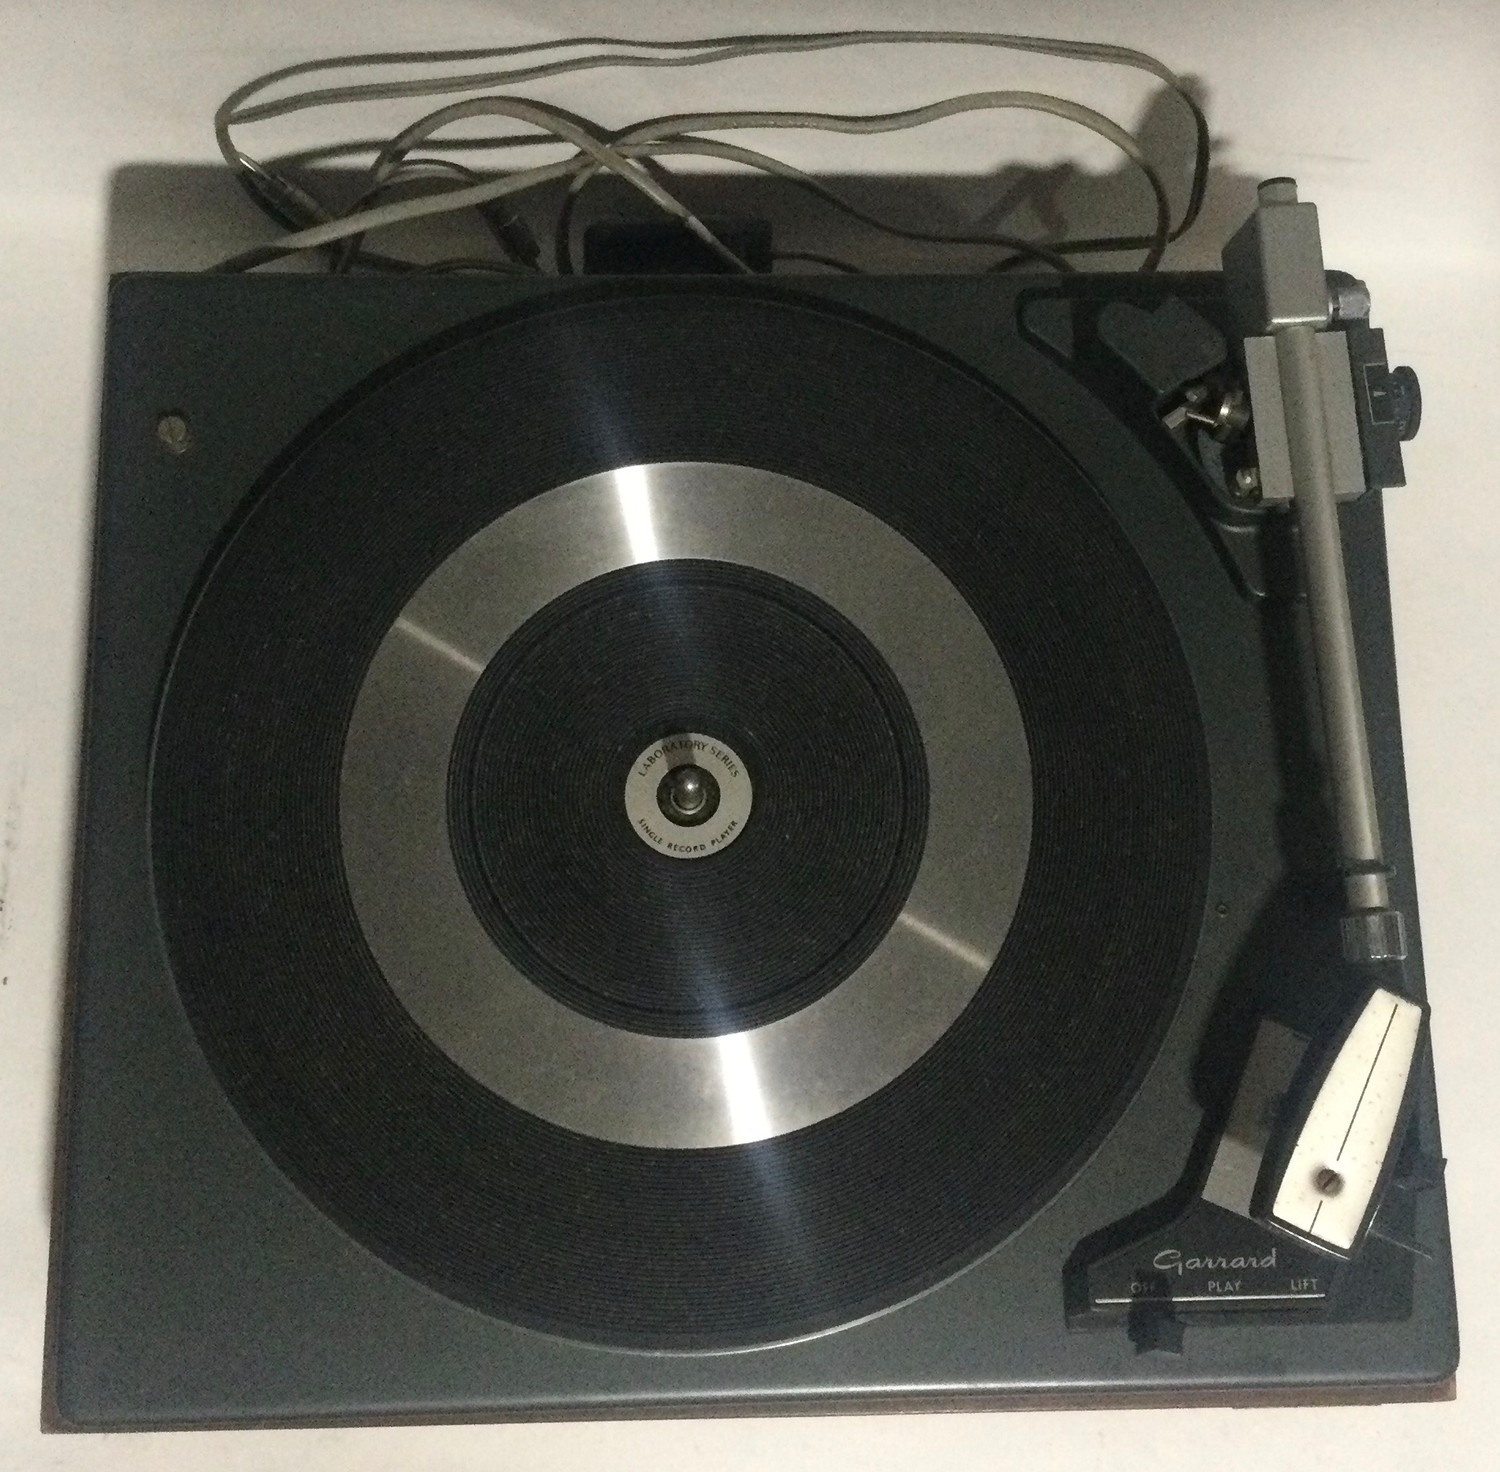 Garrard SP25 mk2 turntable / record player. Comes in wooden plinth with Perspex lid. - Image 2 of 4